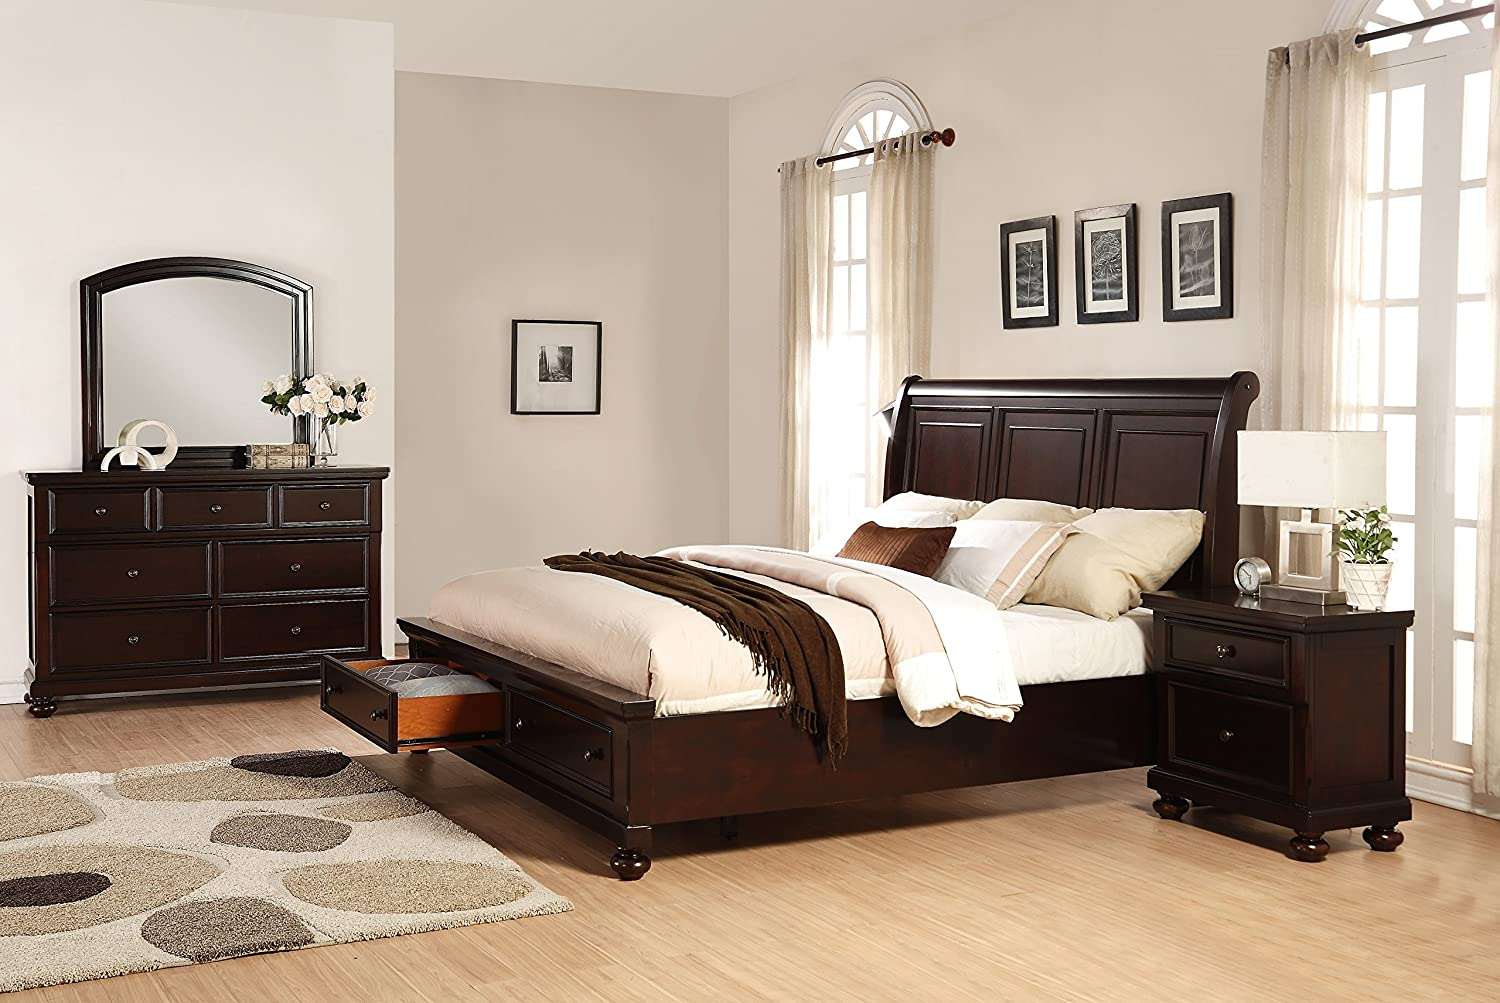 Roundhill Furniture Brishland Storage Bedroom Set Includes Queen Bed - Dresser - Mirror and Nighstand - Rustic Cherry